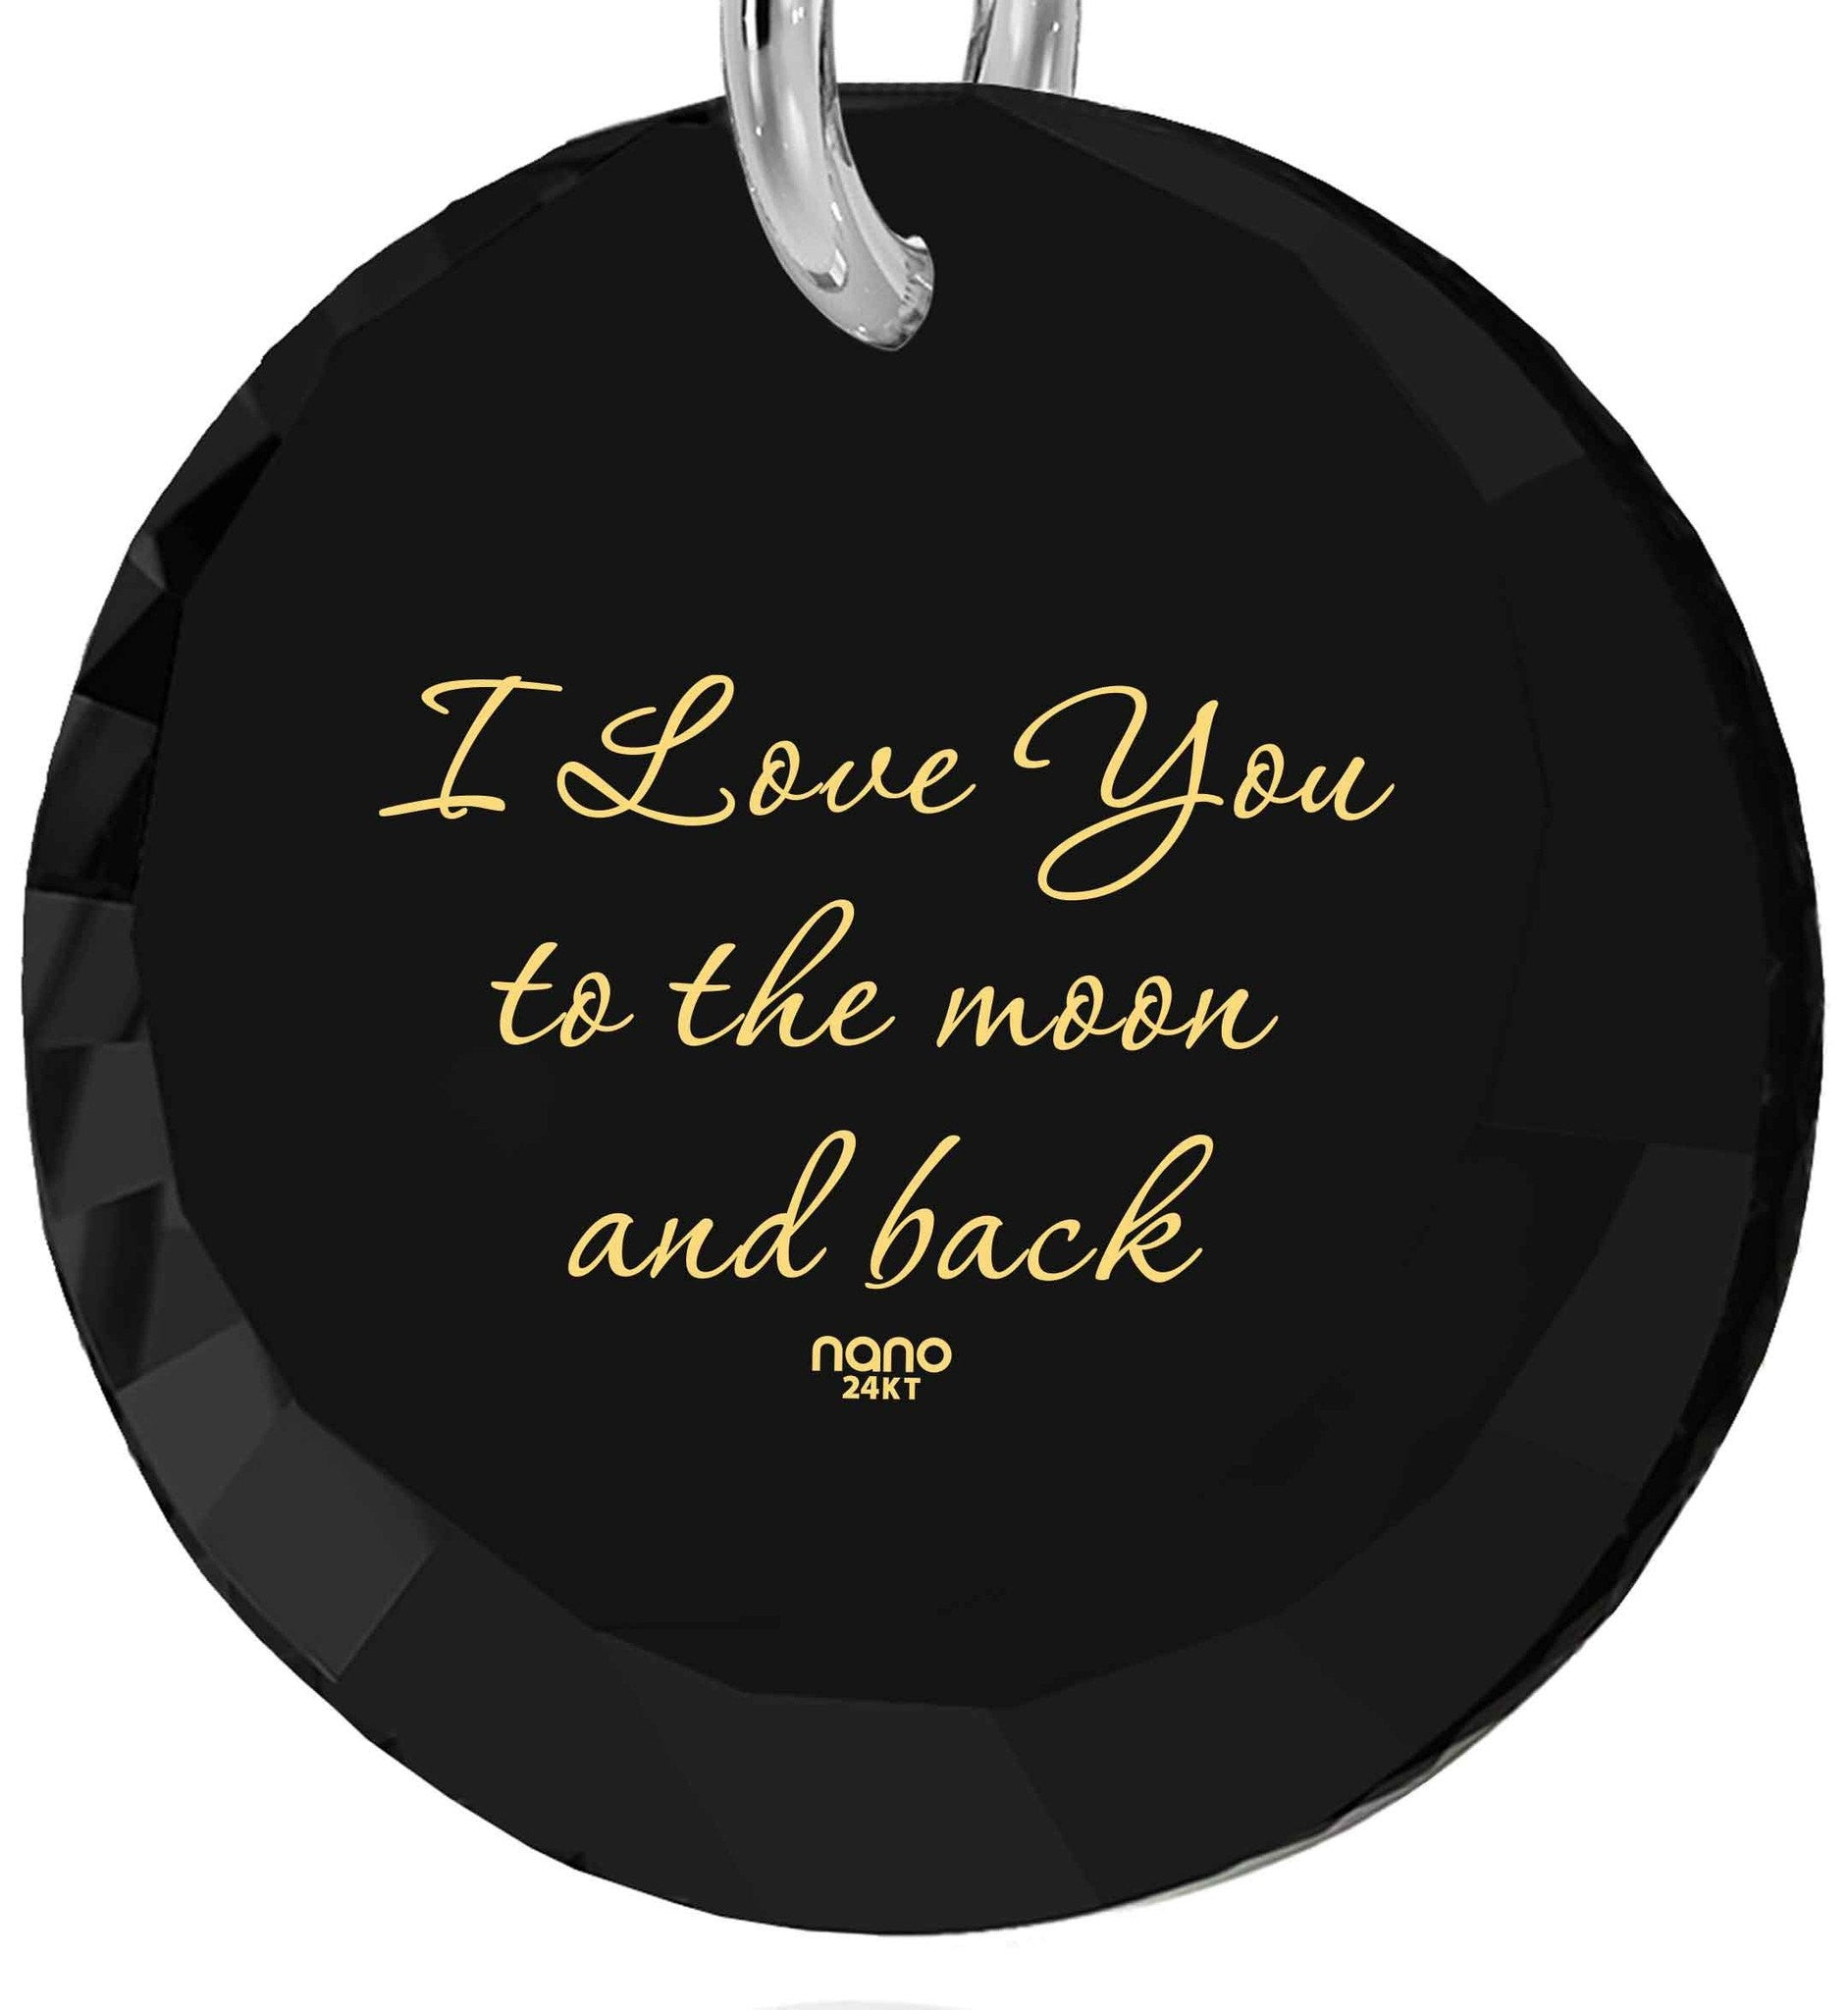 "Best Valentine Gift for Wife,""I Love You to The Moon and Back"", Pure Romance Products, Nano Jewelry"